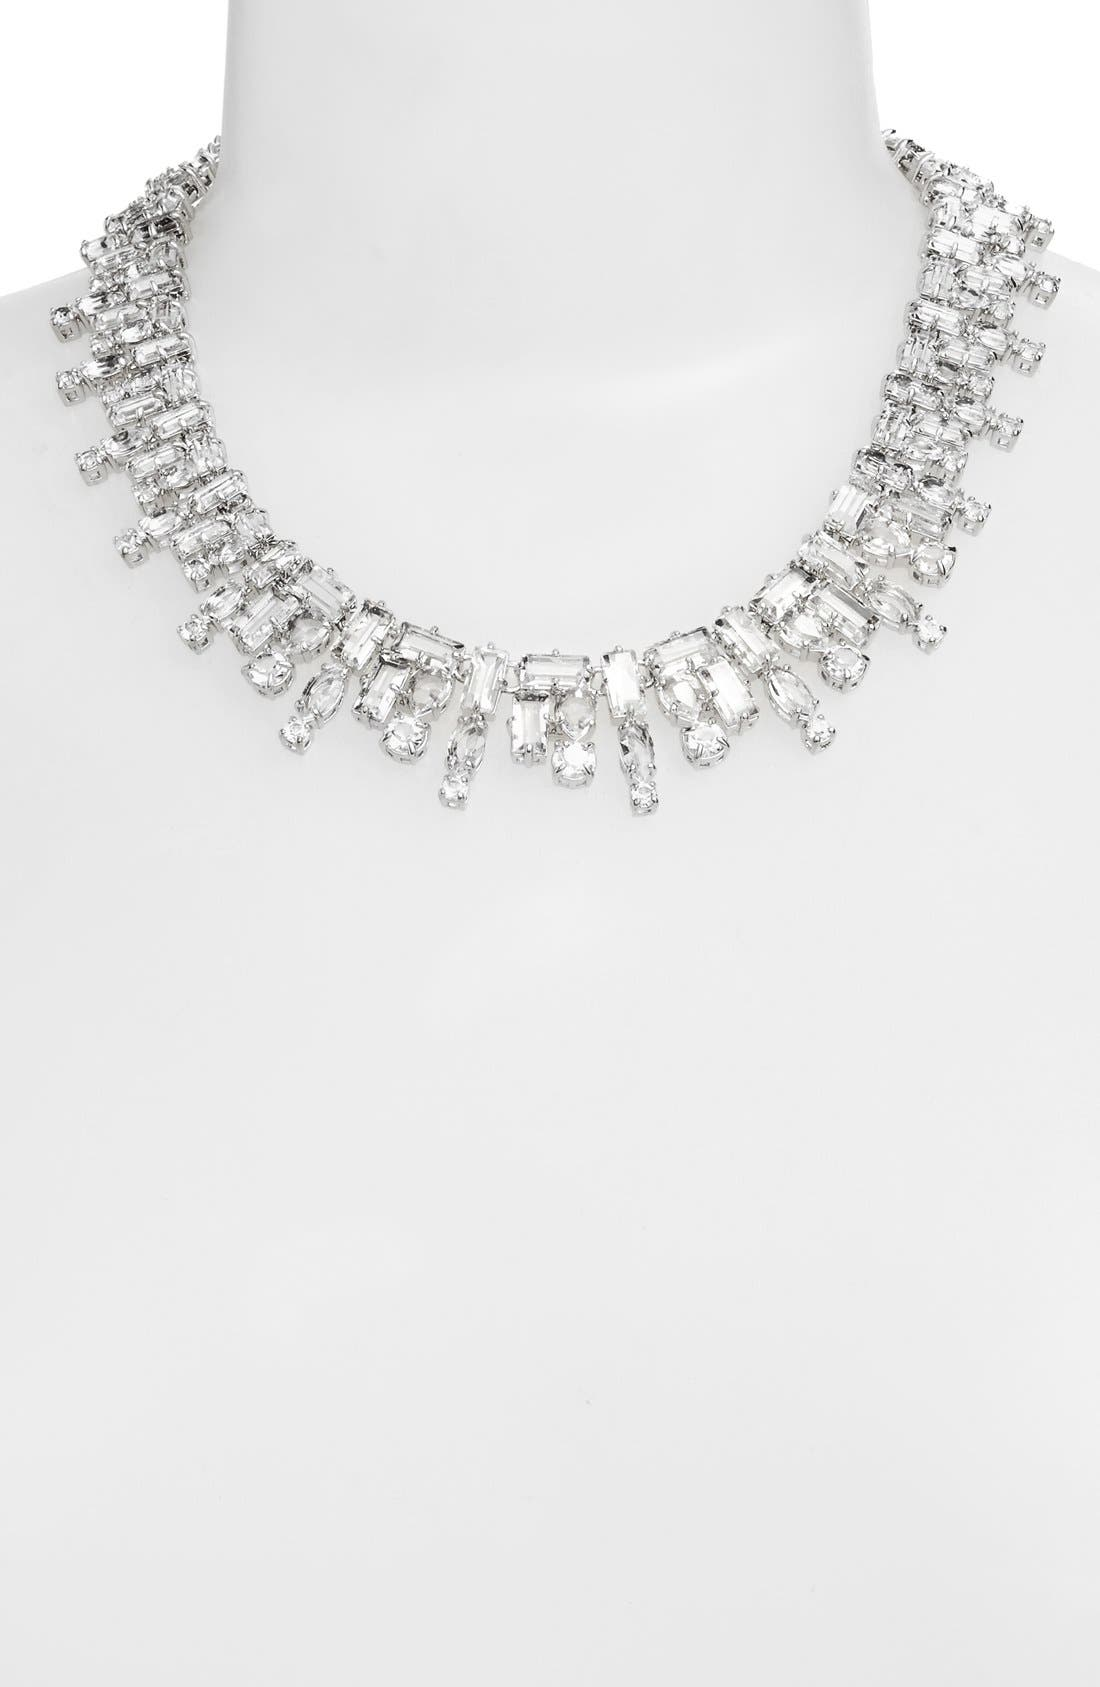 KATE SPADE NEW YORK,                             'catching light' collar necklace,                             Alternate thumbnail 2, color,                             710